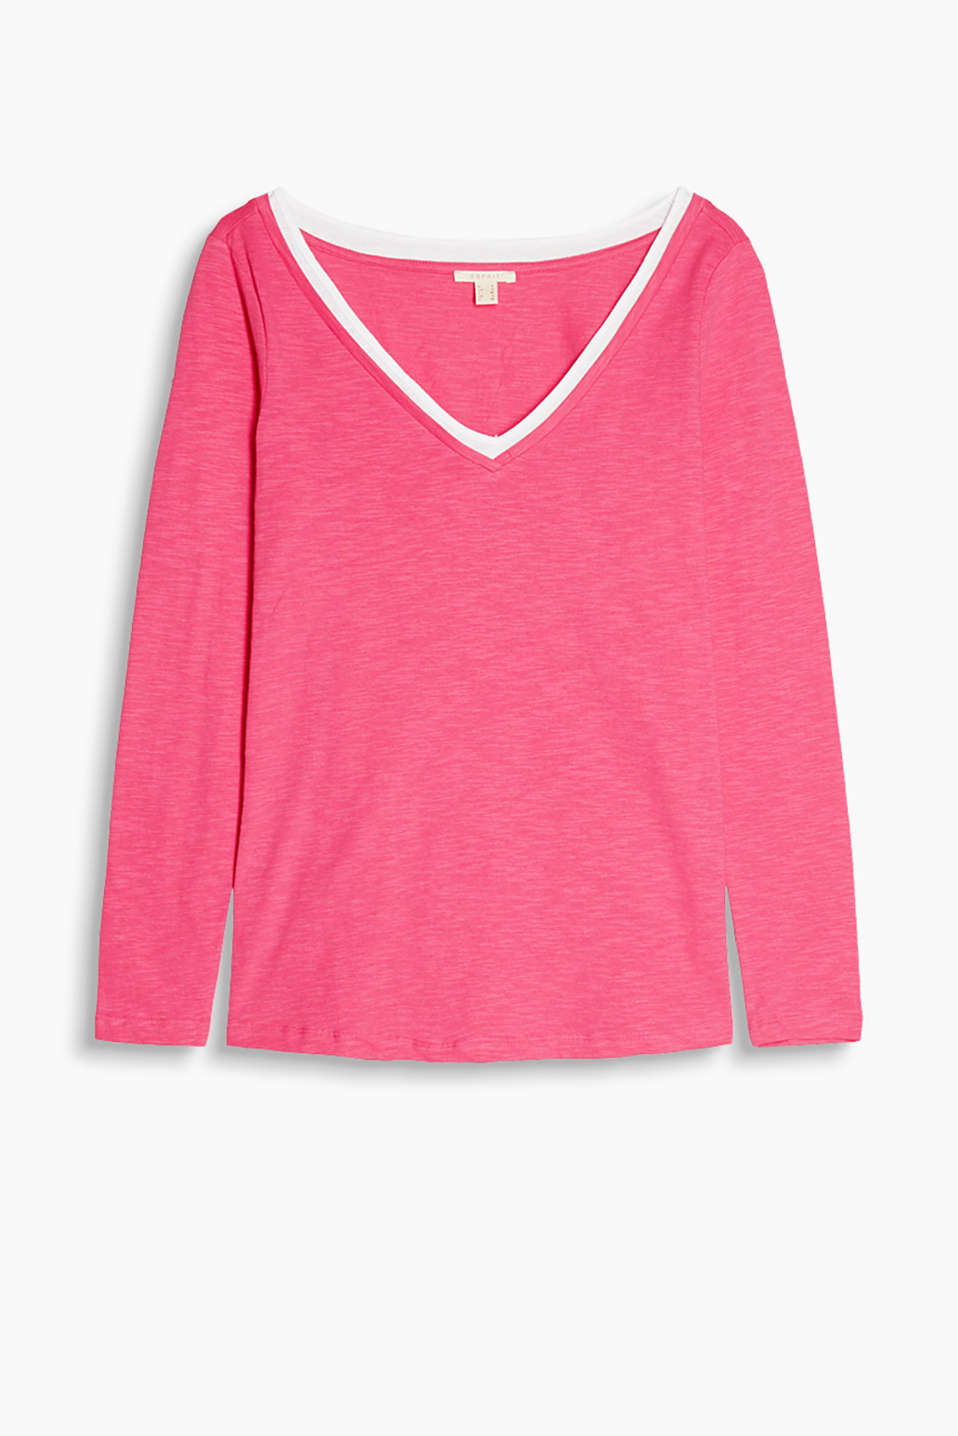 Airy slub long sleeve top with a layered effect on the generous V-neckline, 100% cotton